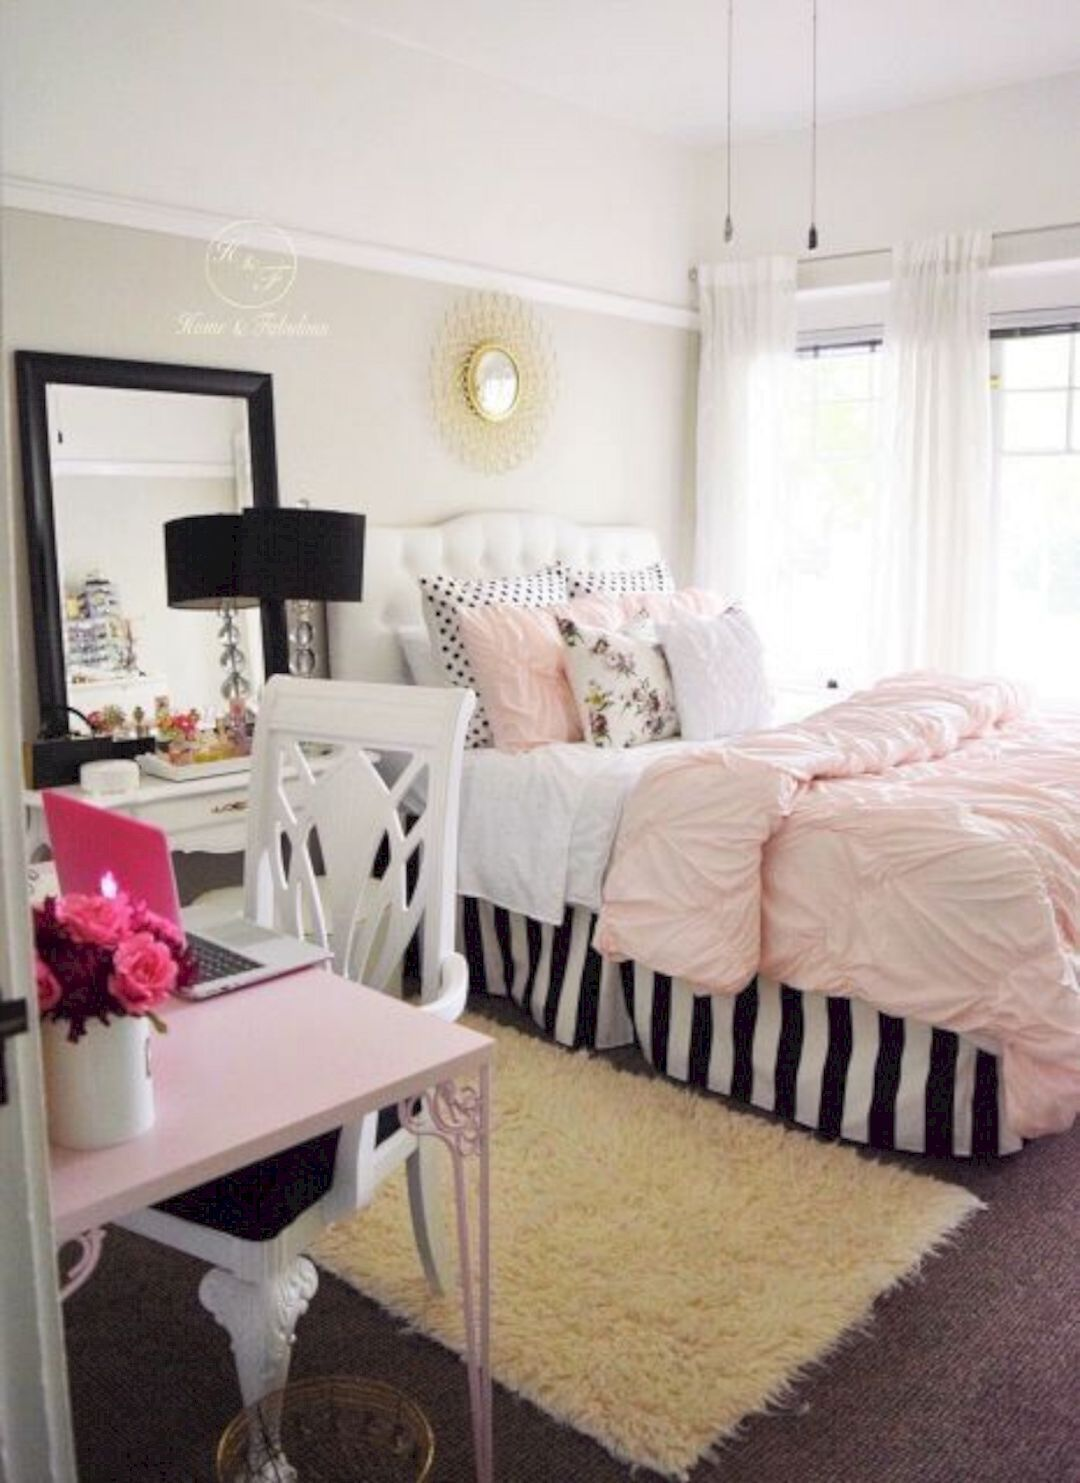 15 Girly Bedroom Designs Https://www.designlisticle.com/girly